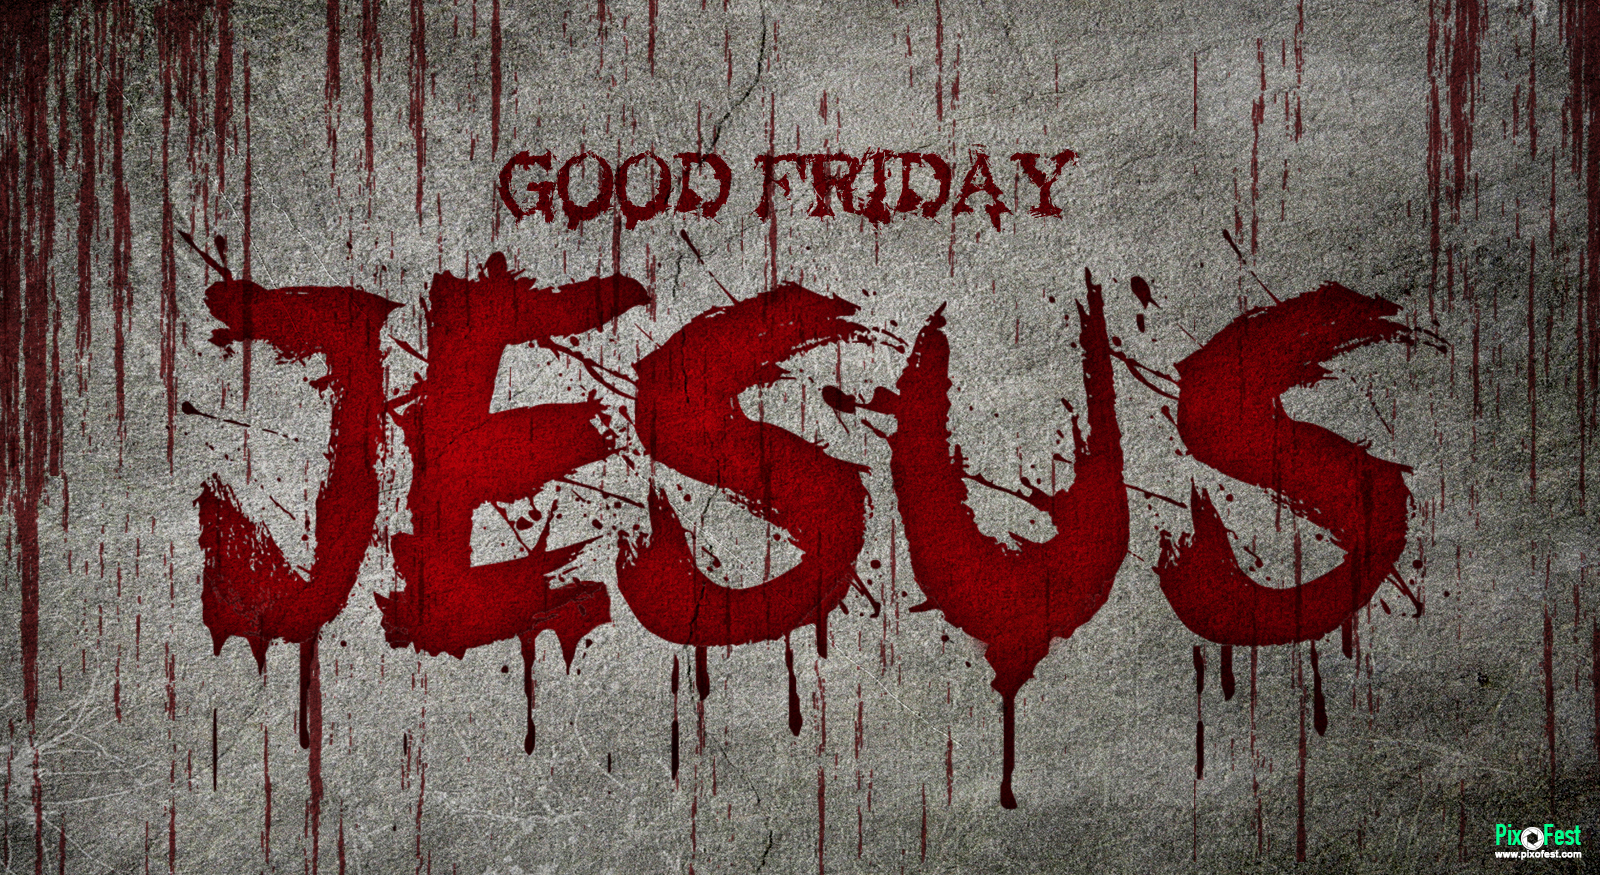 Good Friday,Jesus text,Blood text Jesus,Jesus blood text,Good freiday blood text,Jesus text wallpaper,jesus blood text wallpaperChristian holiday , final words from the cross,Good Friday2019,Cross,crucifixion of Jesus,Holy Friday, Great Friday,Black Friday,Date of Good Friday, legal holiday,Baptism